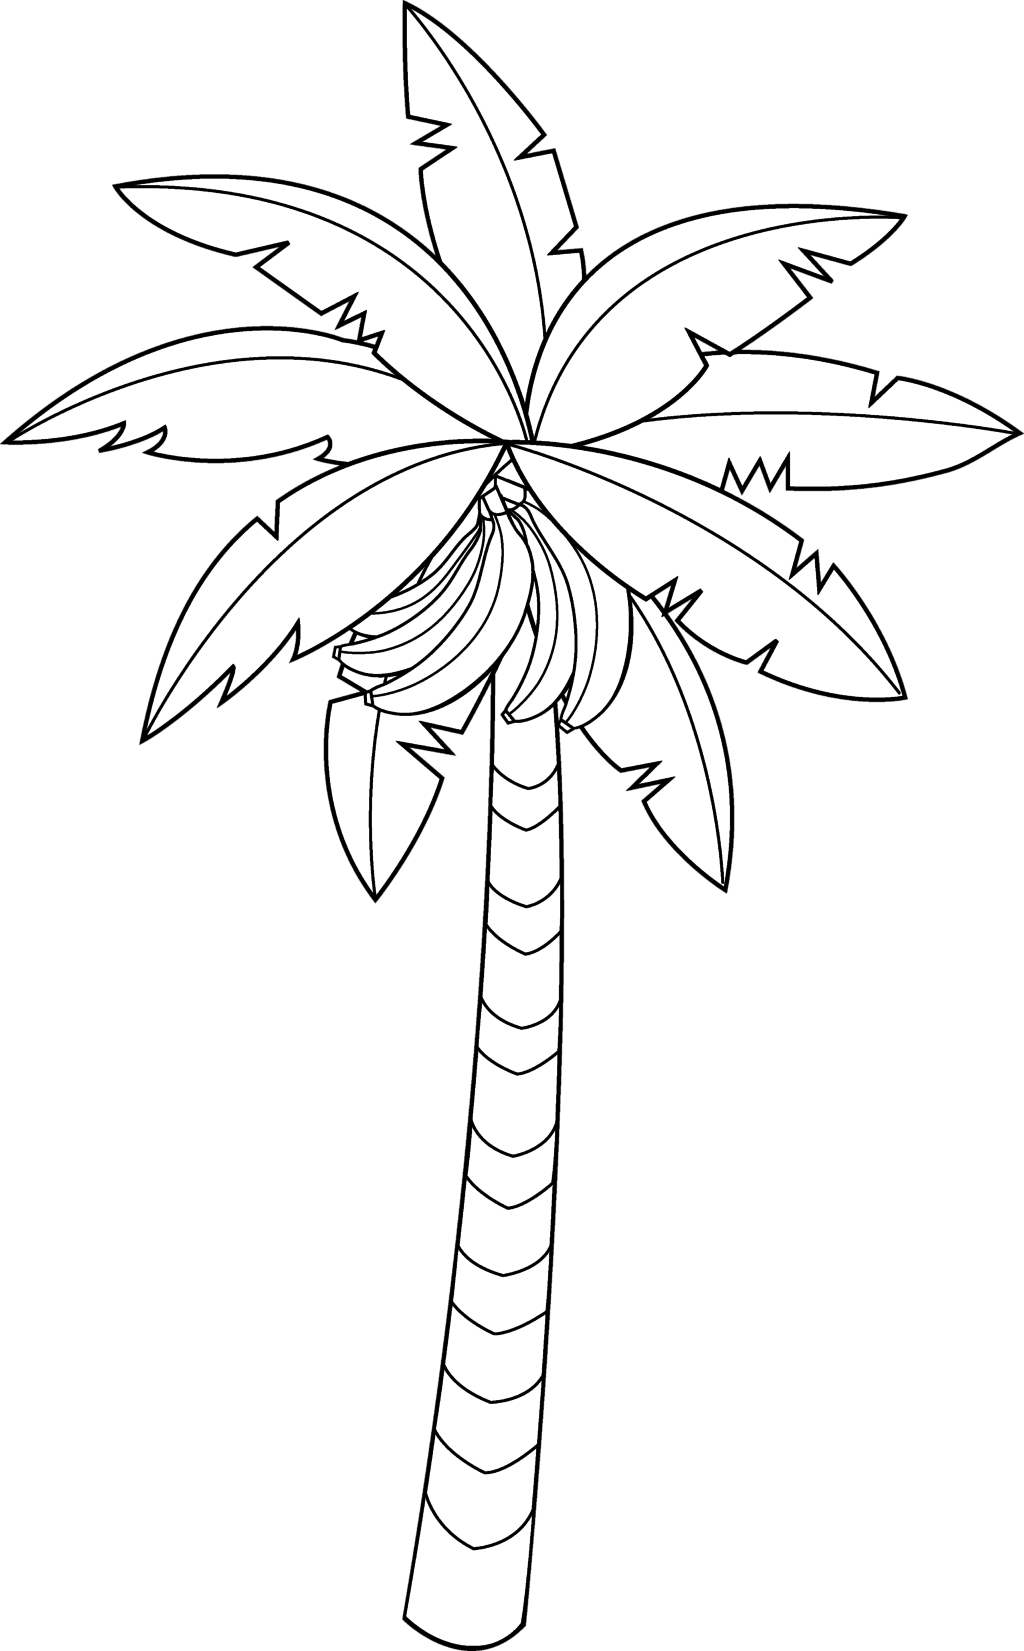 Coloring pictures of bananas. Clipart tree banana